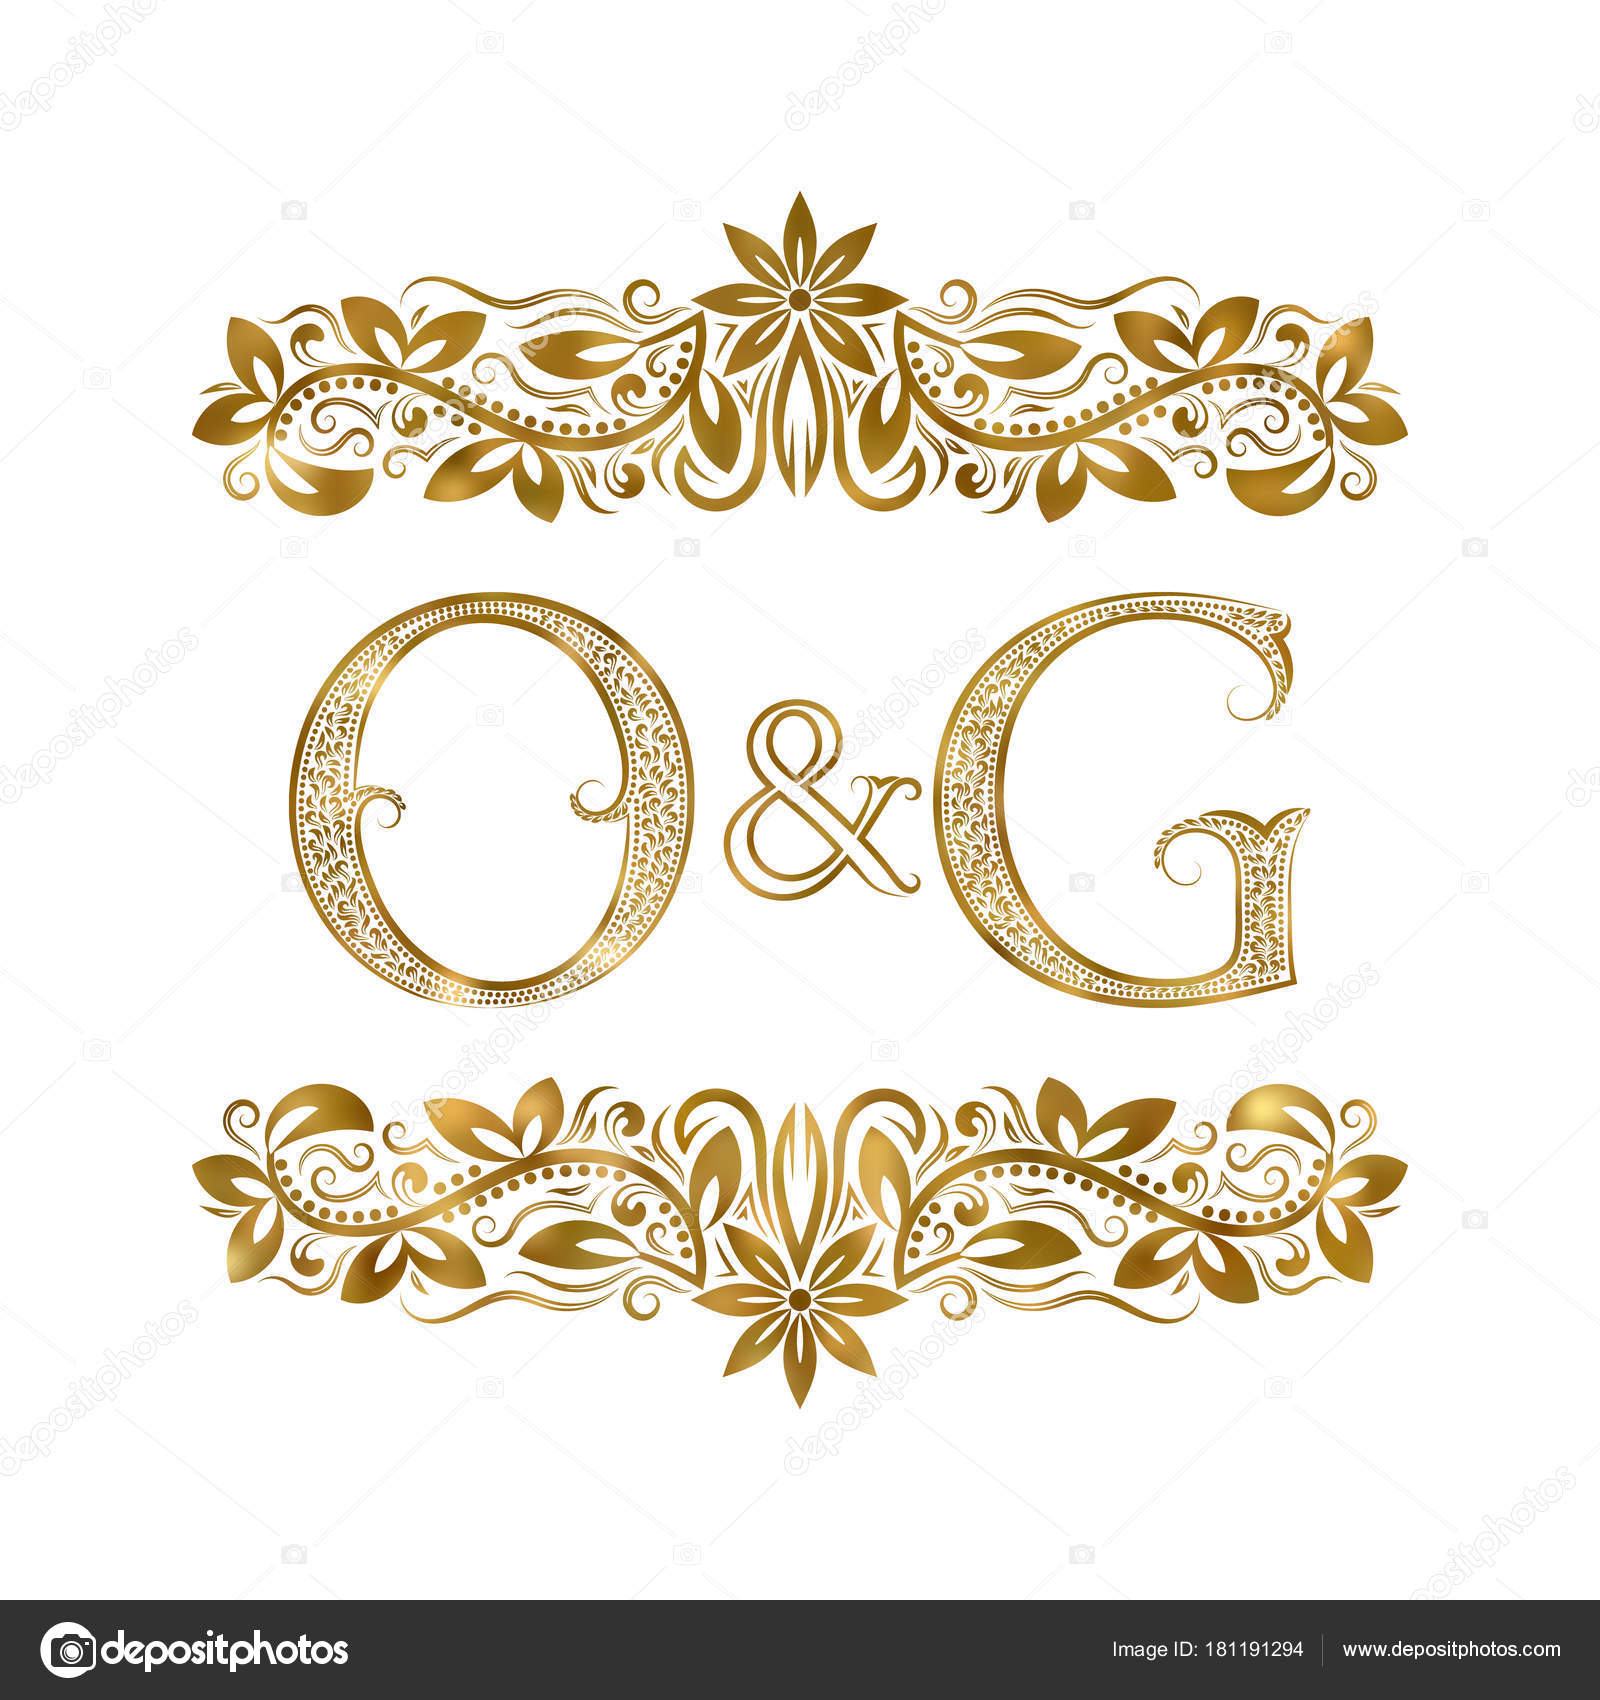 O and g vintage initials logo symbol the letters are surrounded stock illustration o and g vintage initials logo symbol the letters are surrounded by ornamental elements buycottarizona